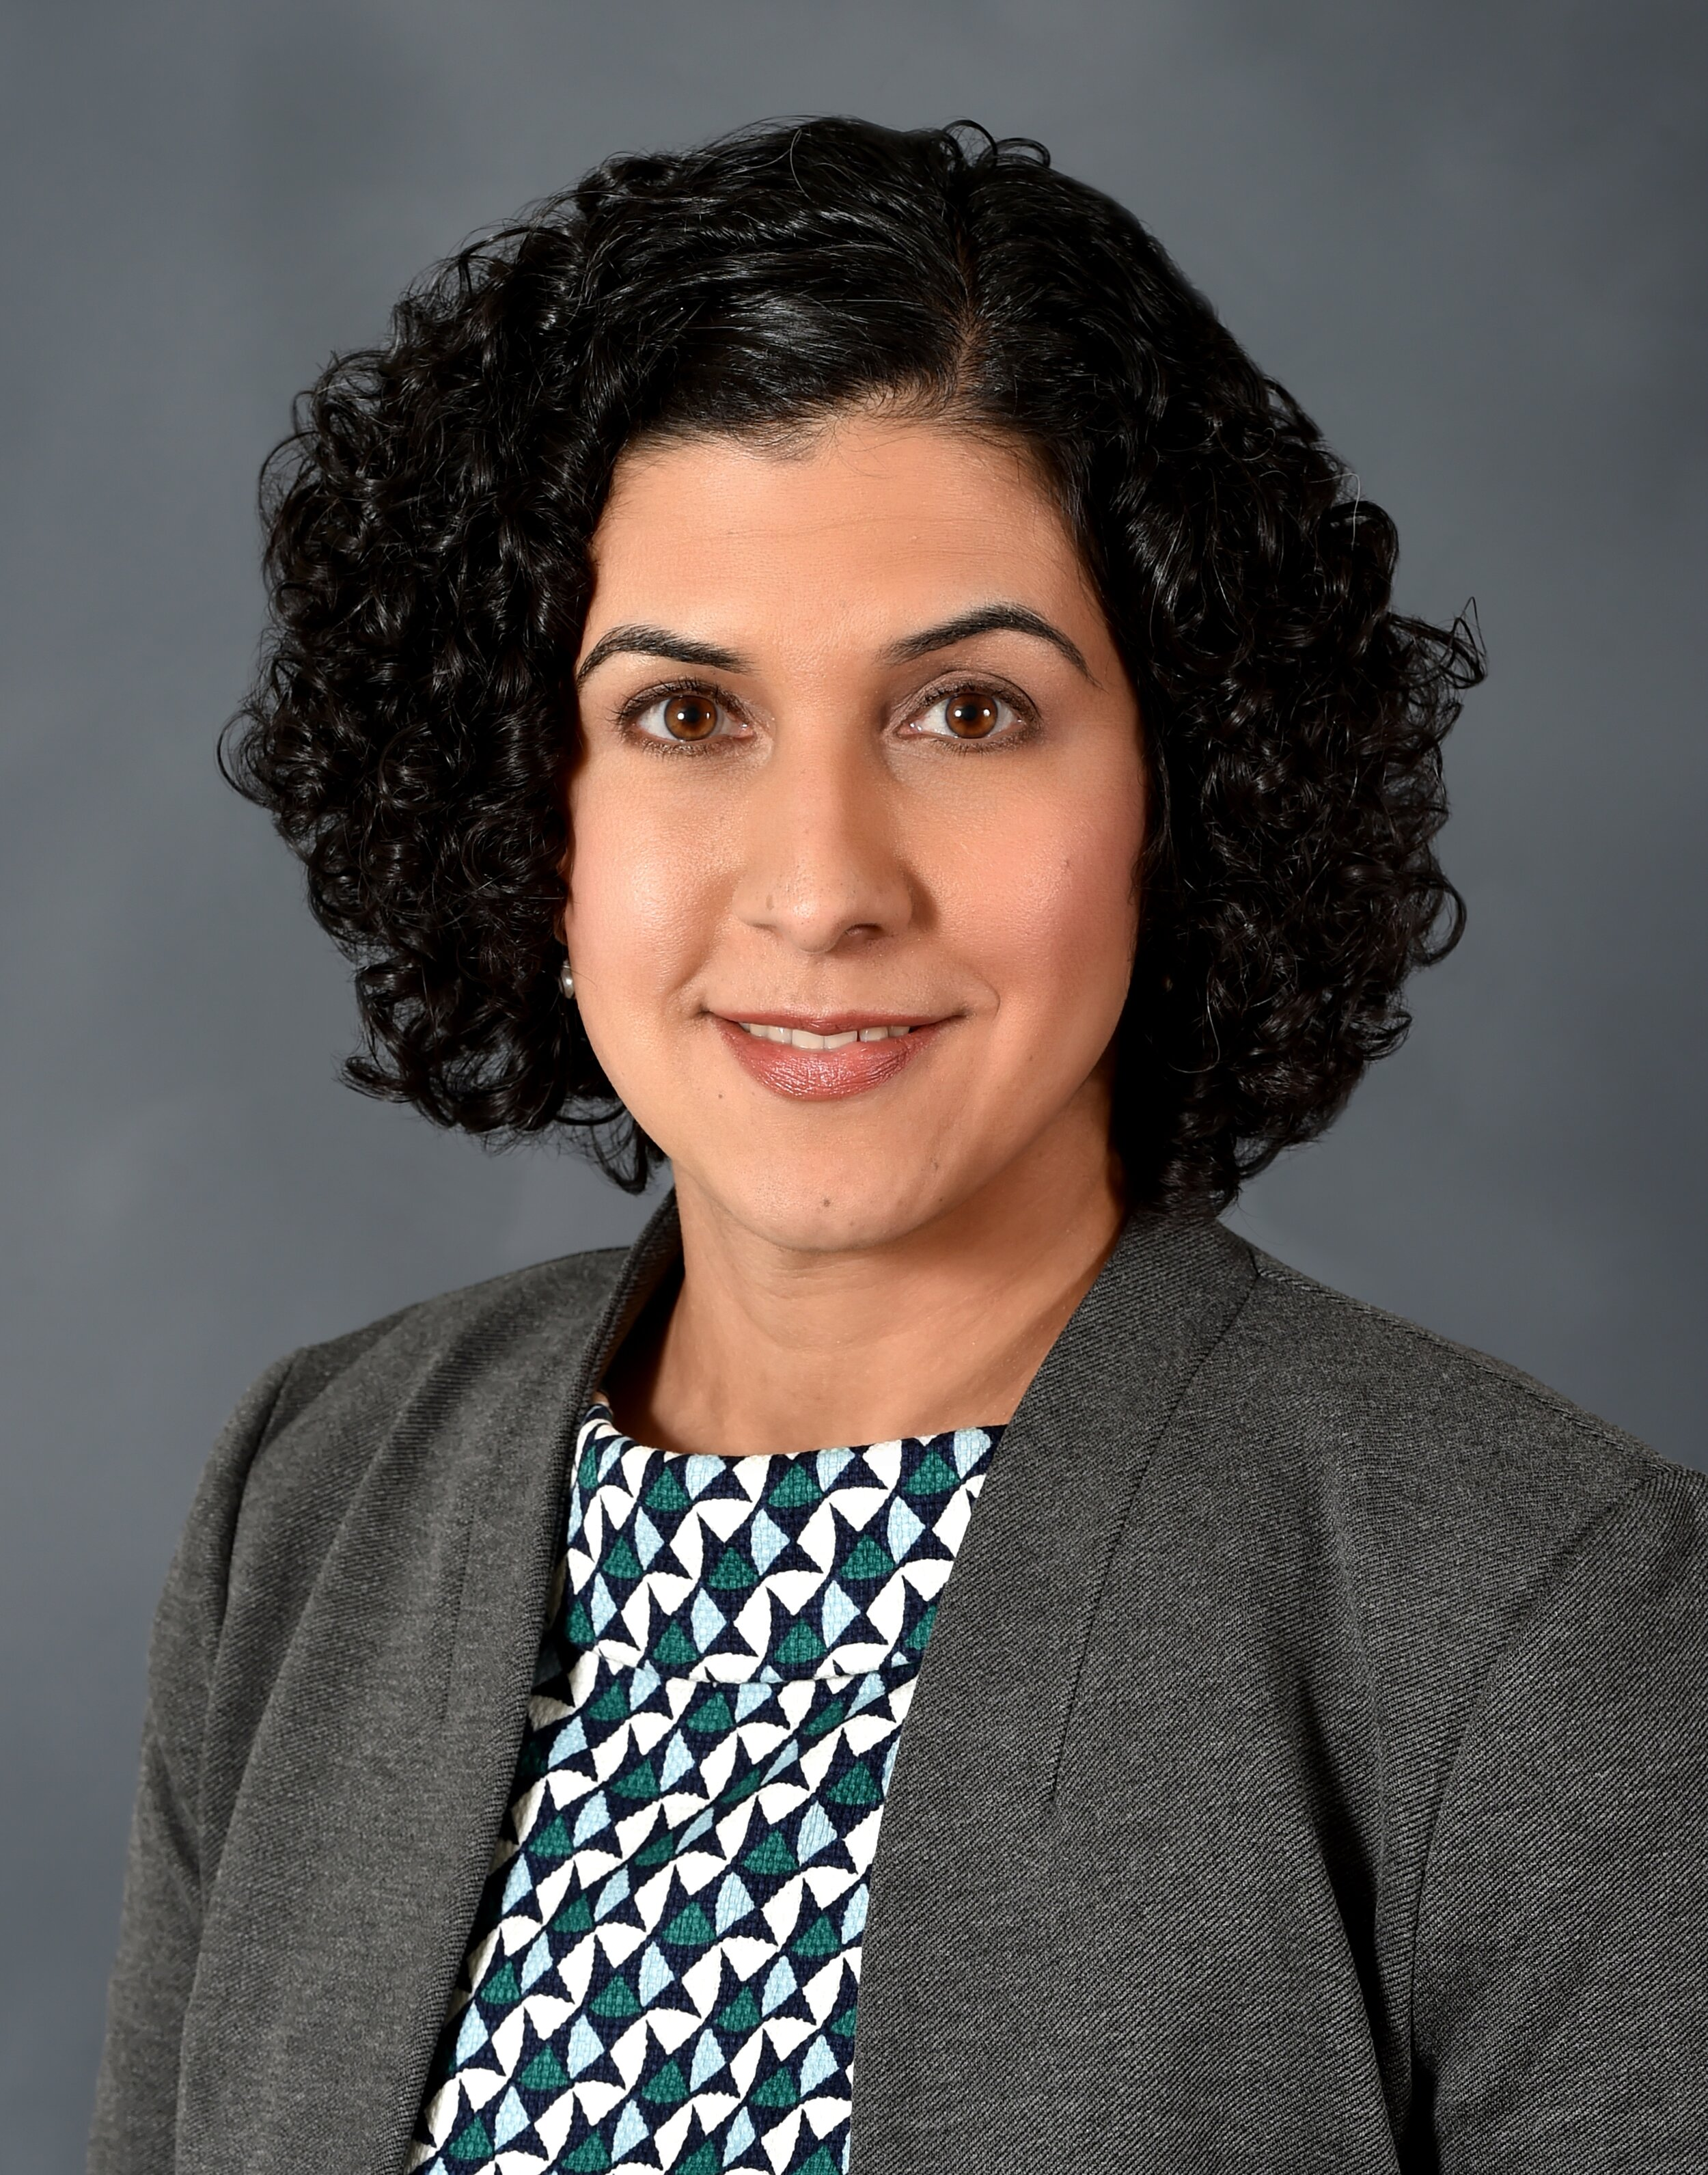 Sara Saberi, M.D., M.S. is an Assistant Professor in the Division of Cardiovascular Medicine and a member of the Inherited Cardiomyopathy Program at the Frankel Cardiovascular Center. She received her bachelor's degree from Northwestern University in Evanston, IL and her medical degree from Wayne State University in Detroit, MI.